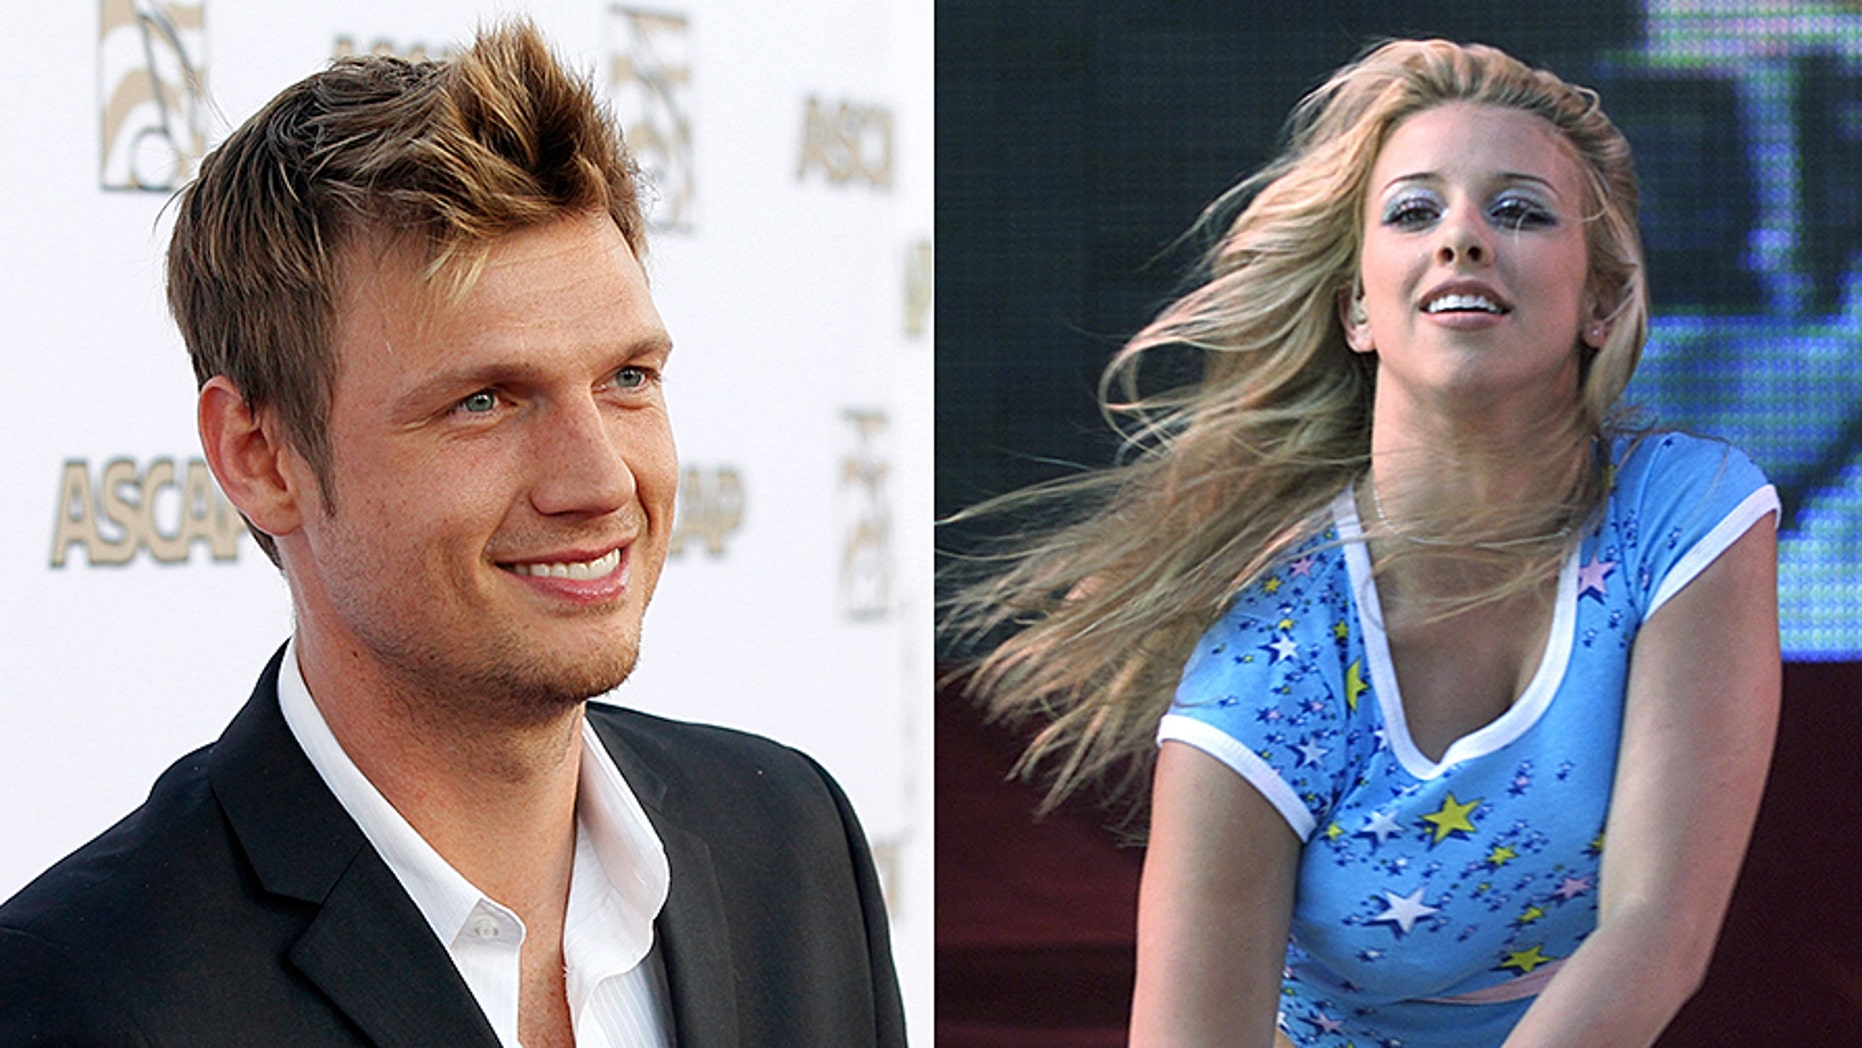 A police report was filed against Nick Carter by Melissa Schuman who claimed the pop star raped her in 2003.